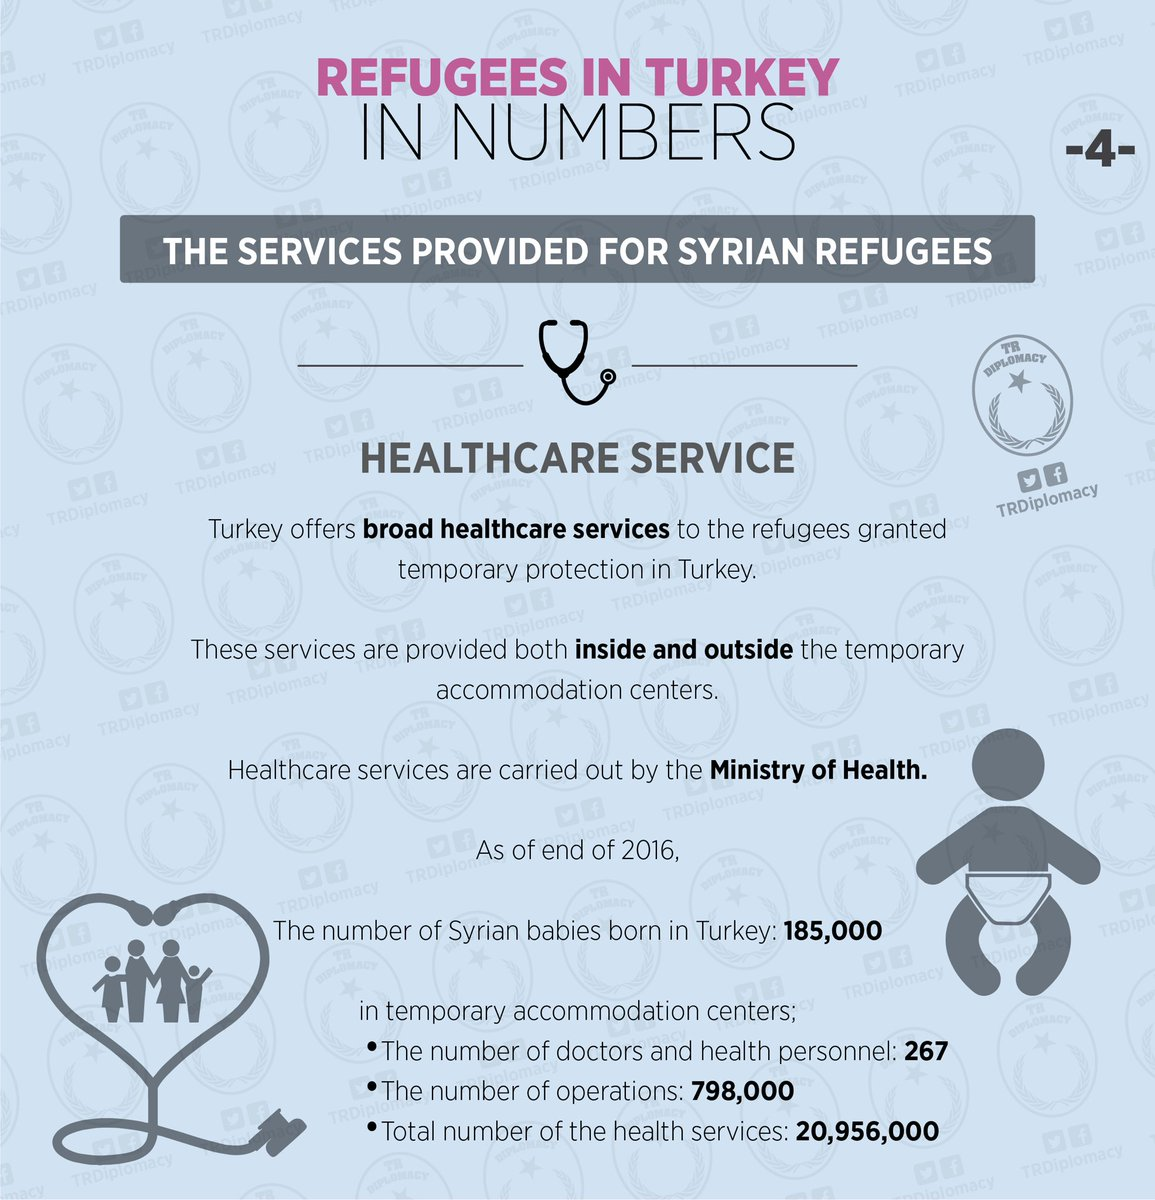 Refugees in Turkey in numbers